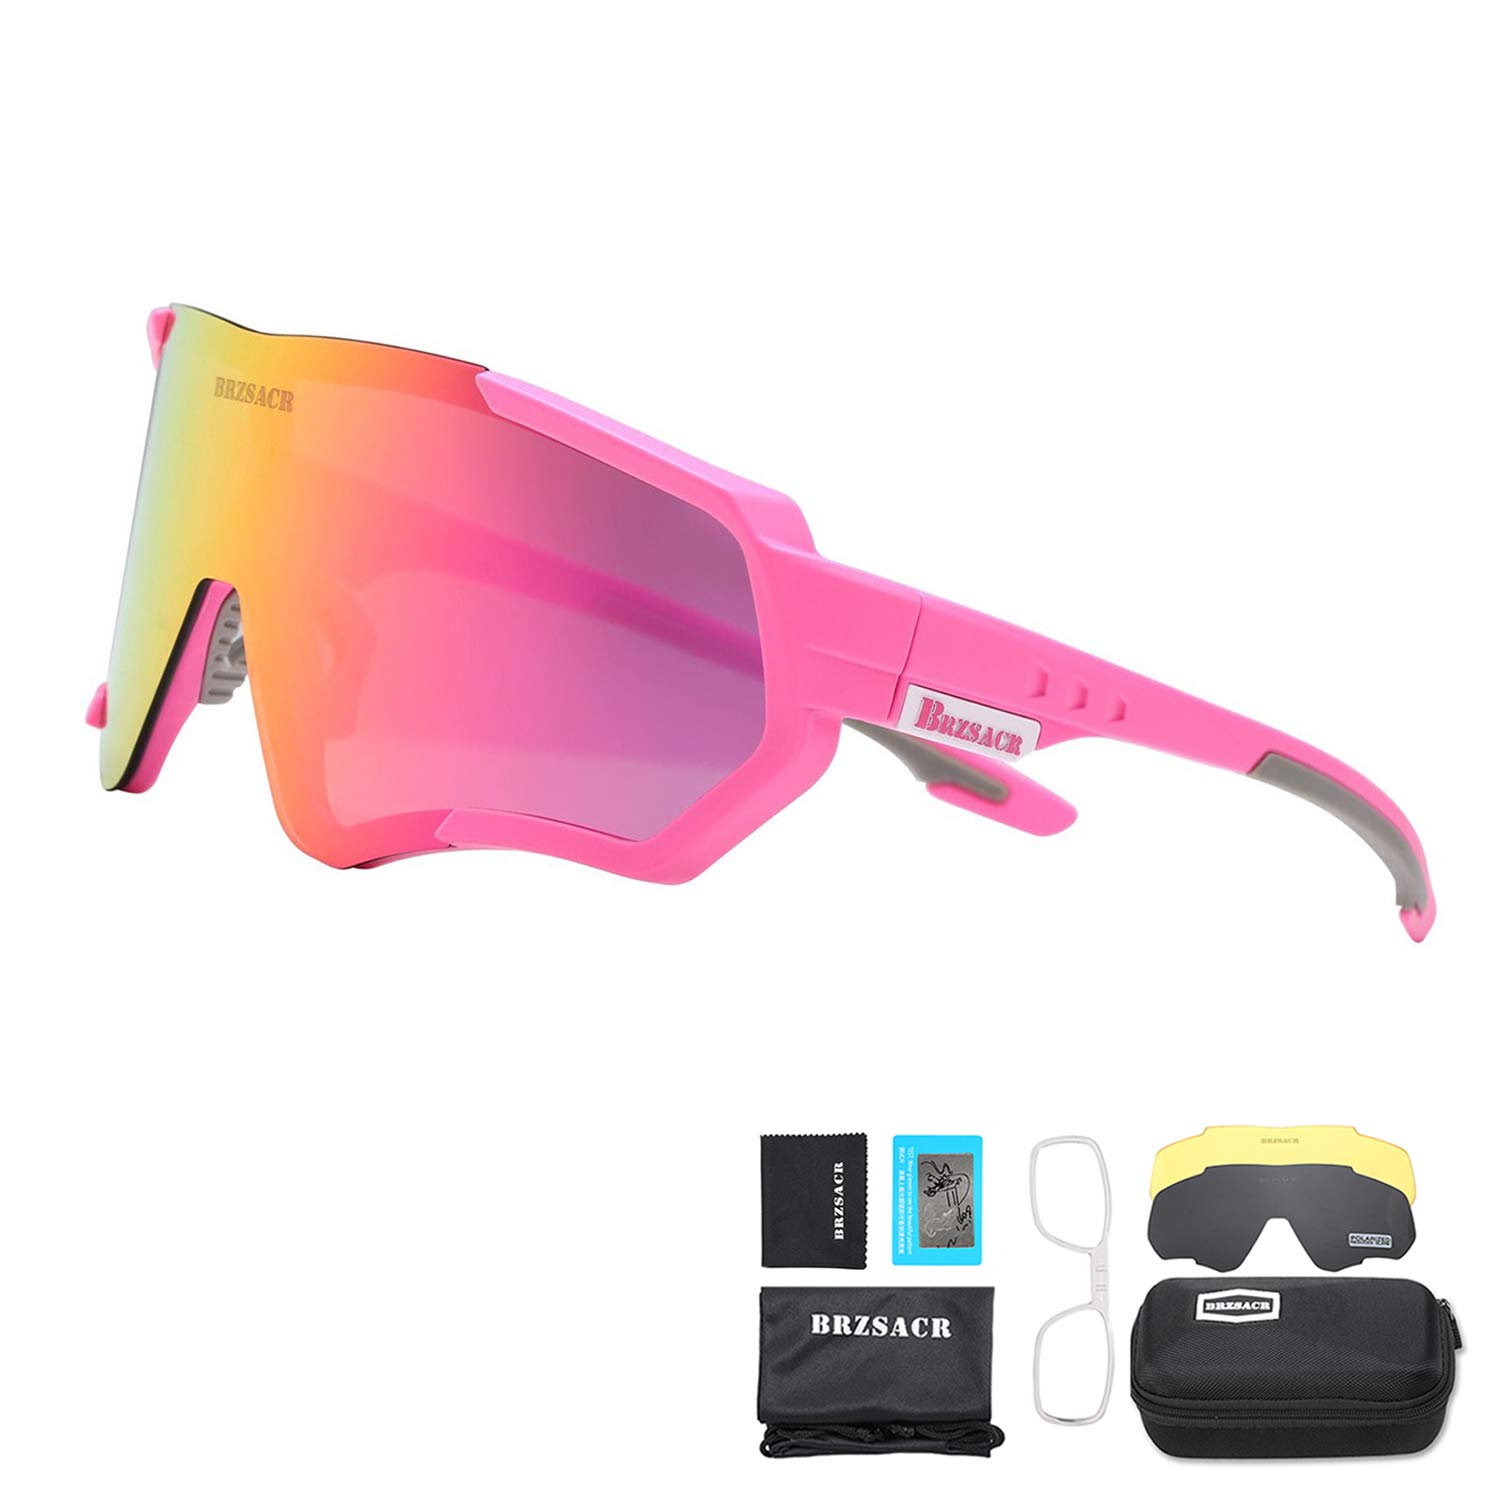 ACS1986 Polarized Sports Sunglasses with Interchangeable Lenes for Men Women Cycling Running Driving Fishing Golf Baseball Glasses.